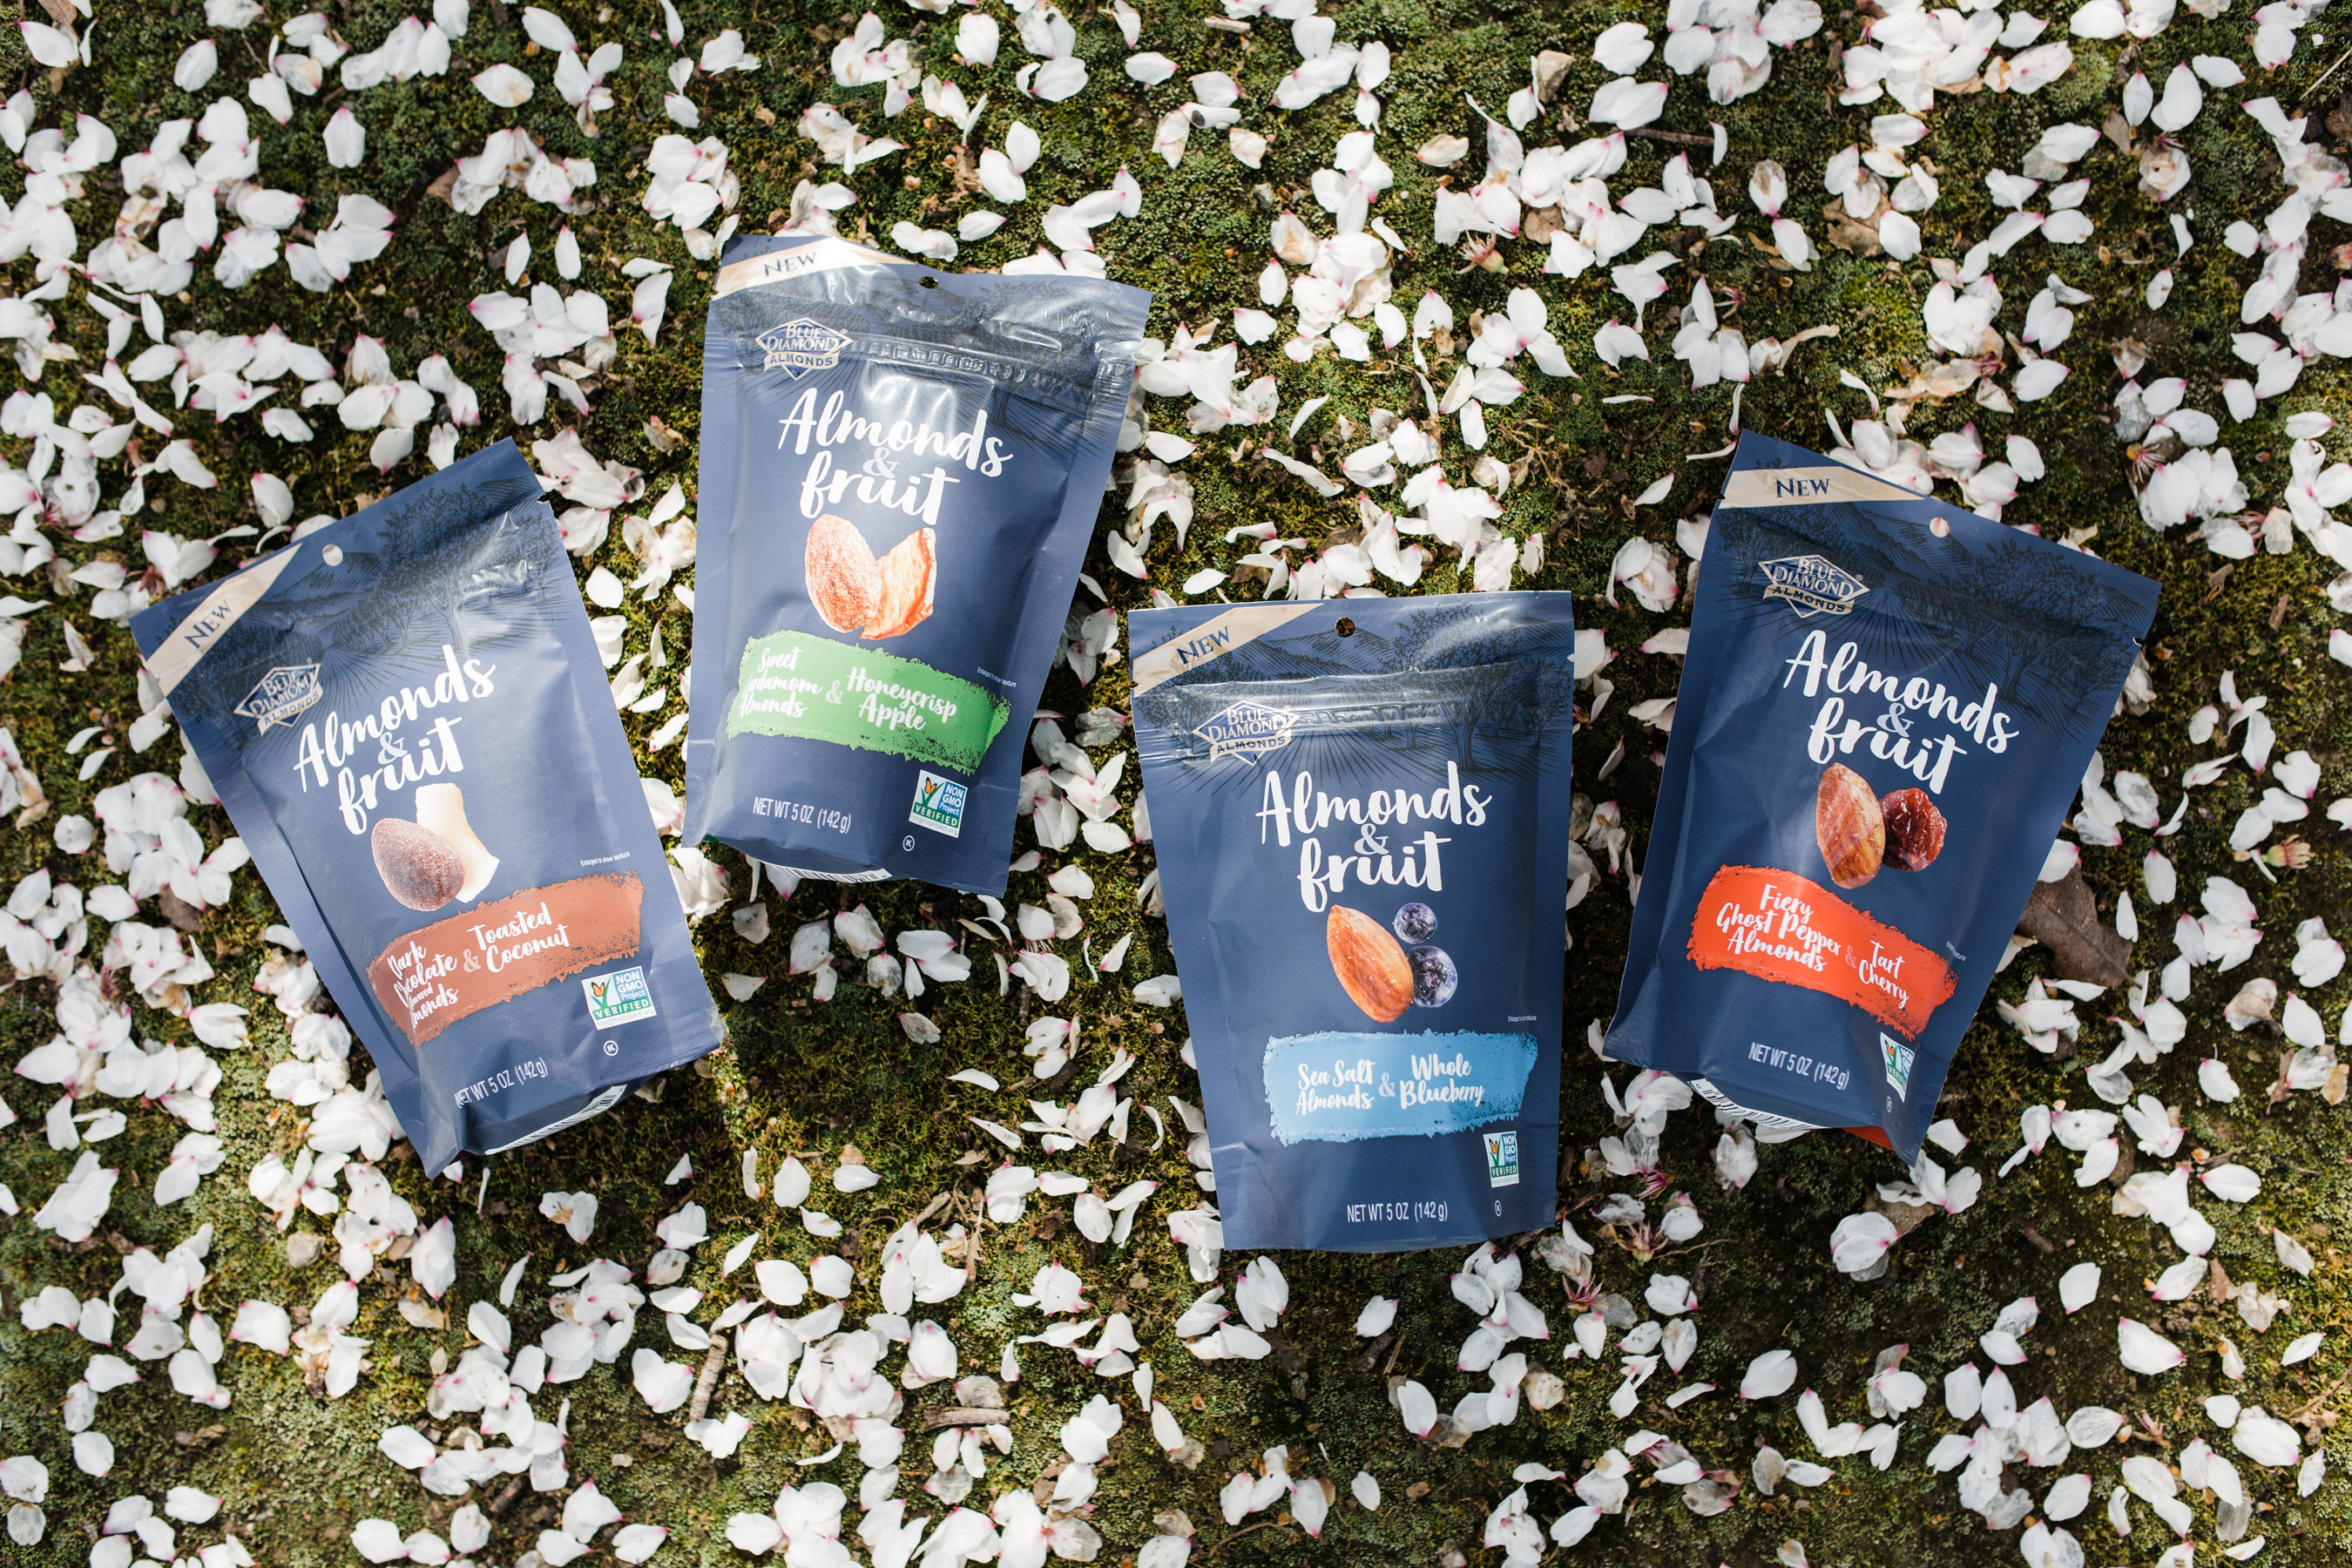 Blue Diamond today expanded their snack almonds portfolio with the launch of Almonds & Fruit, a distinctive take on traditional trail mix.